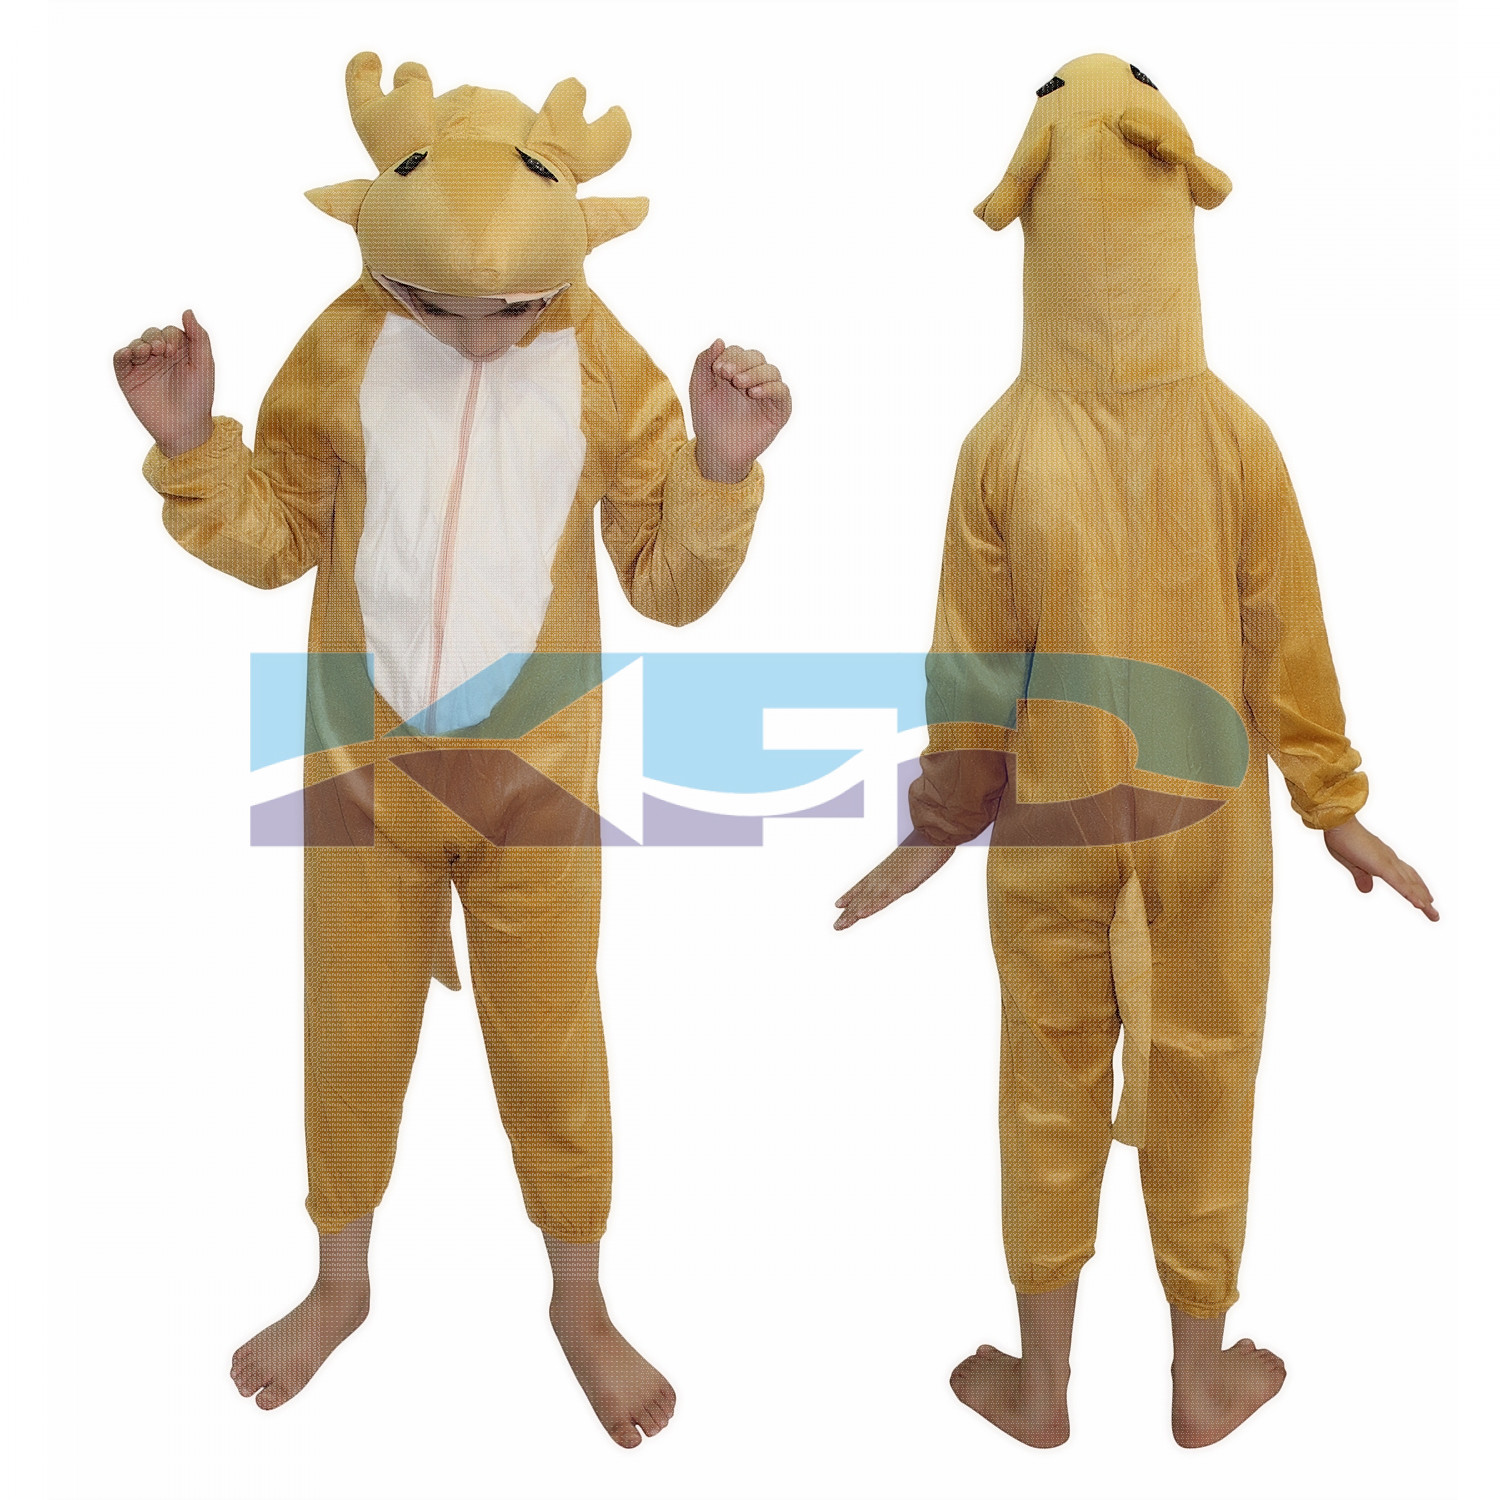 Deer fancy dress for kids,Wild Animal Costume for School Annual function/Theme Party/Competition/Stage Shows  Dress